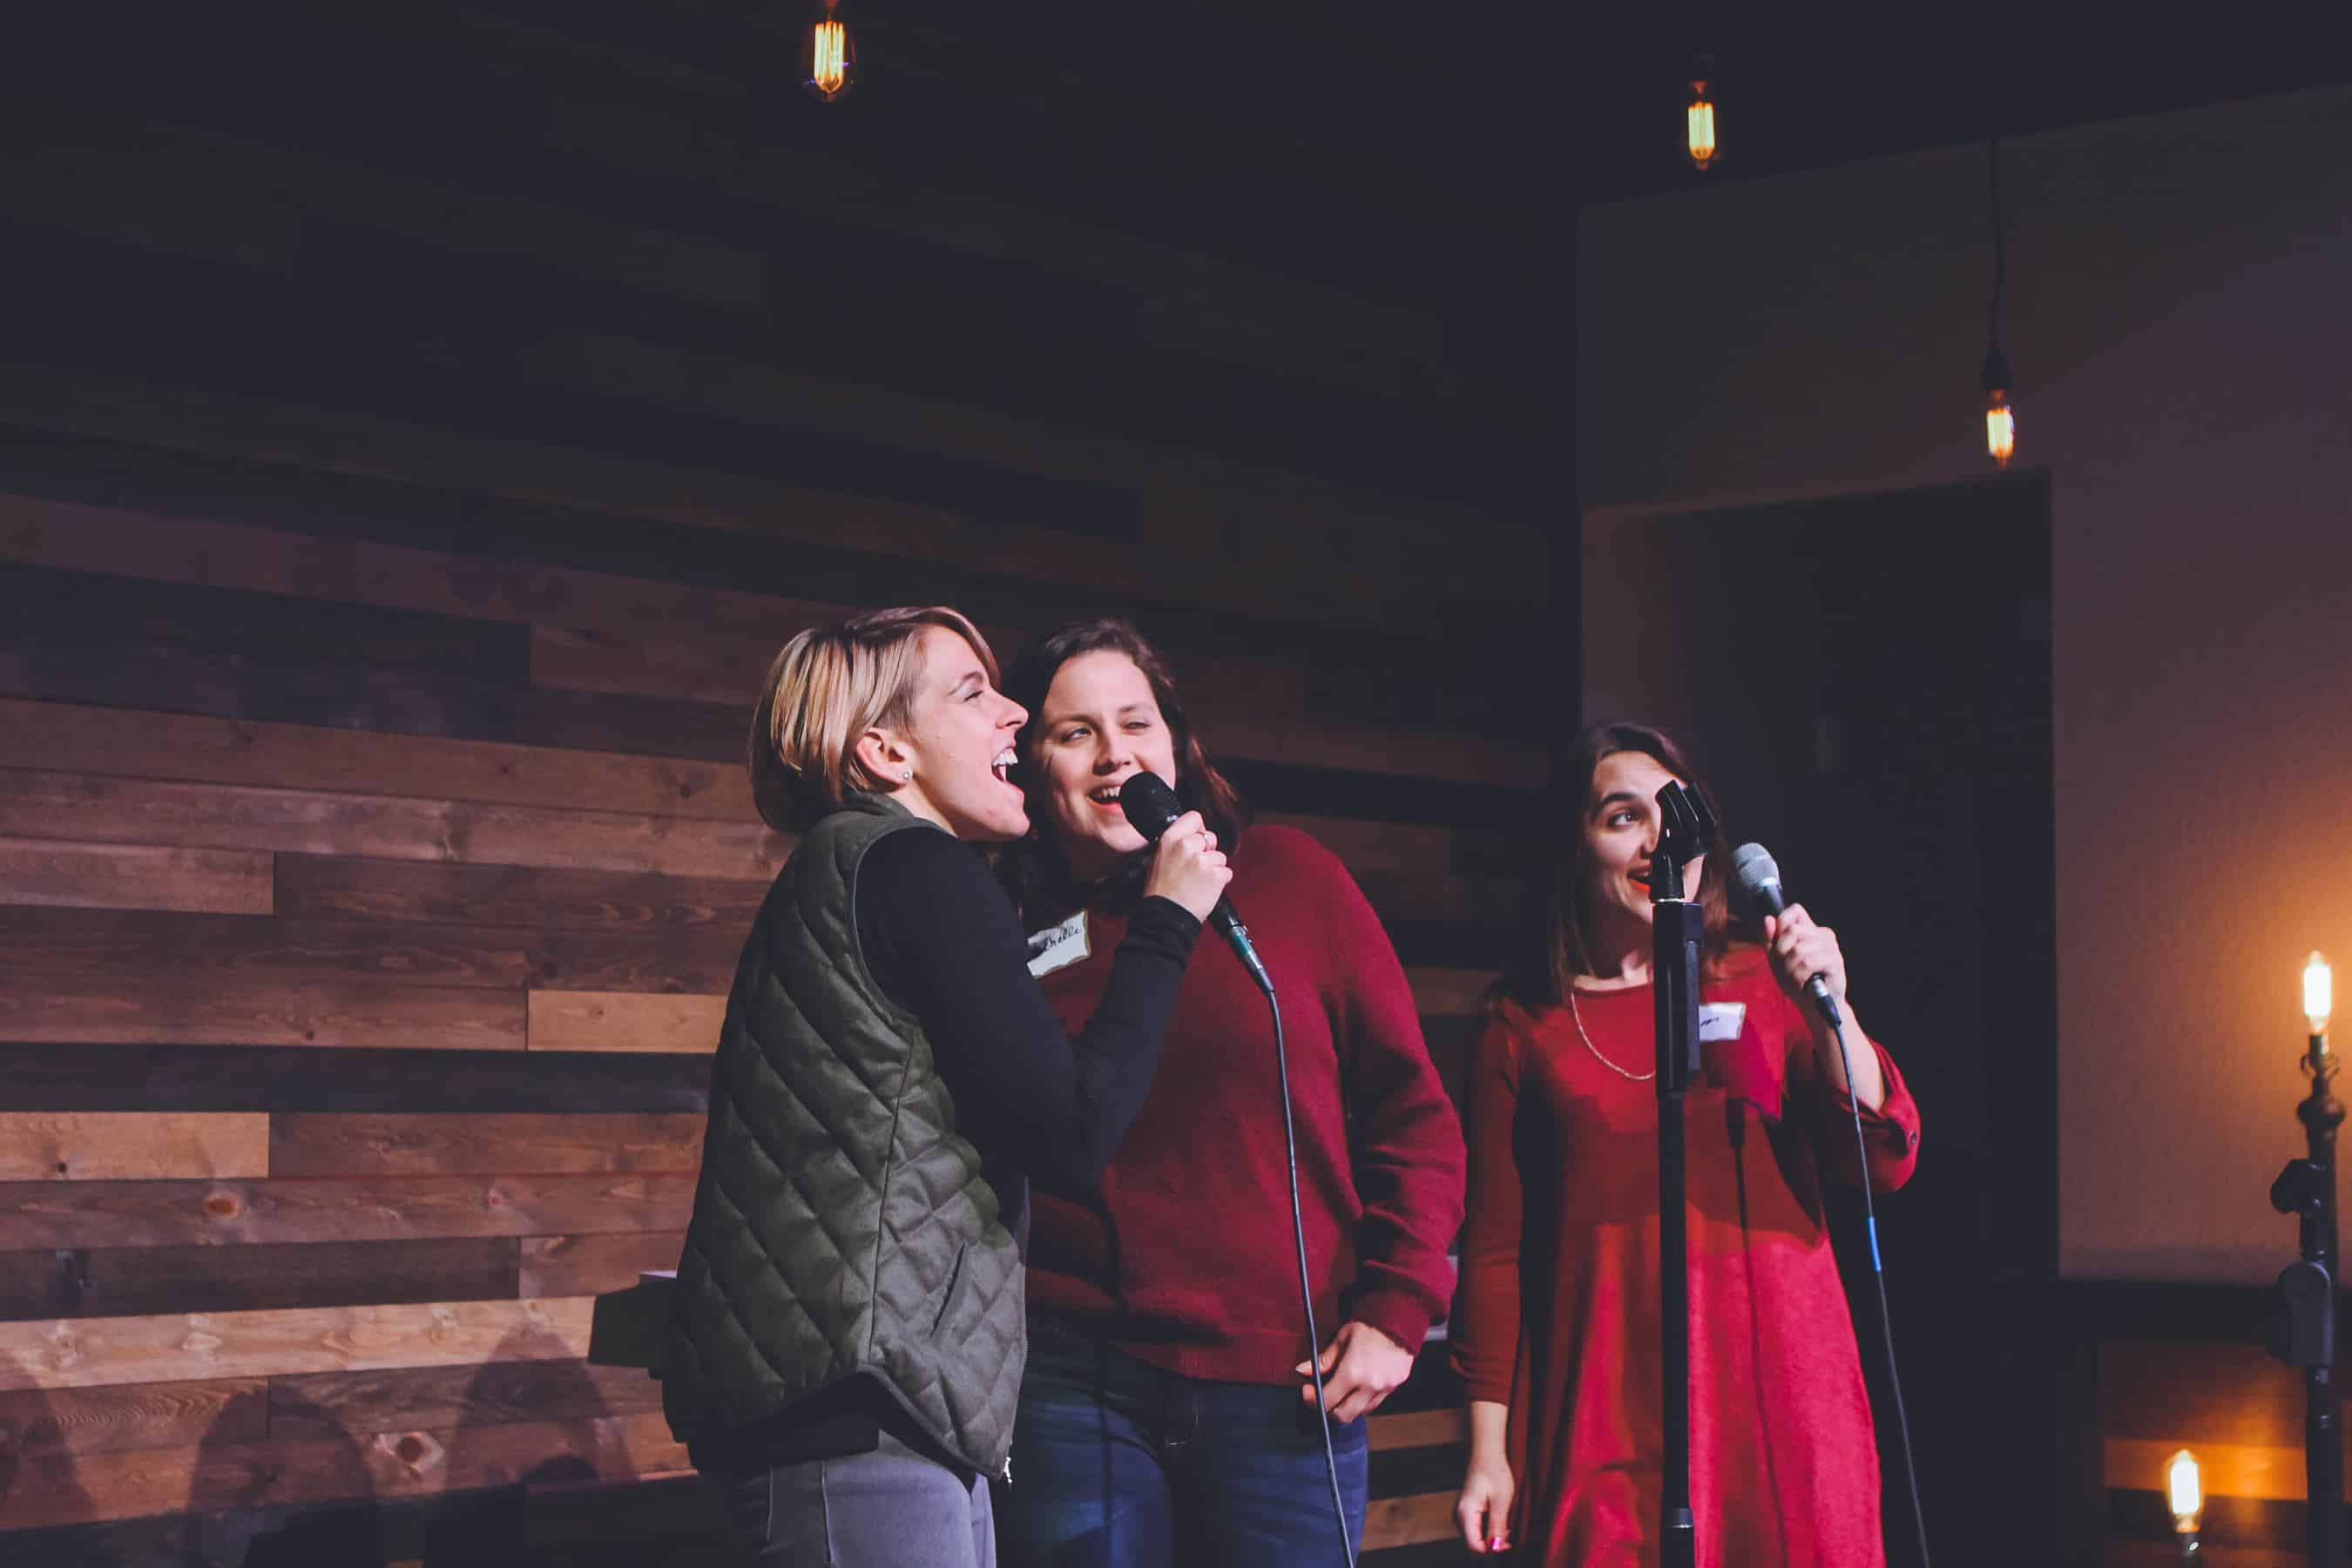 Three women stand on a stage and sing into microphones.